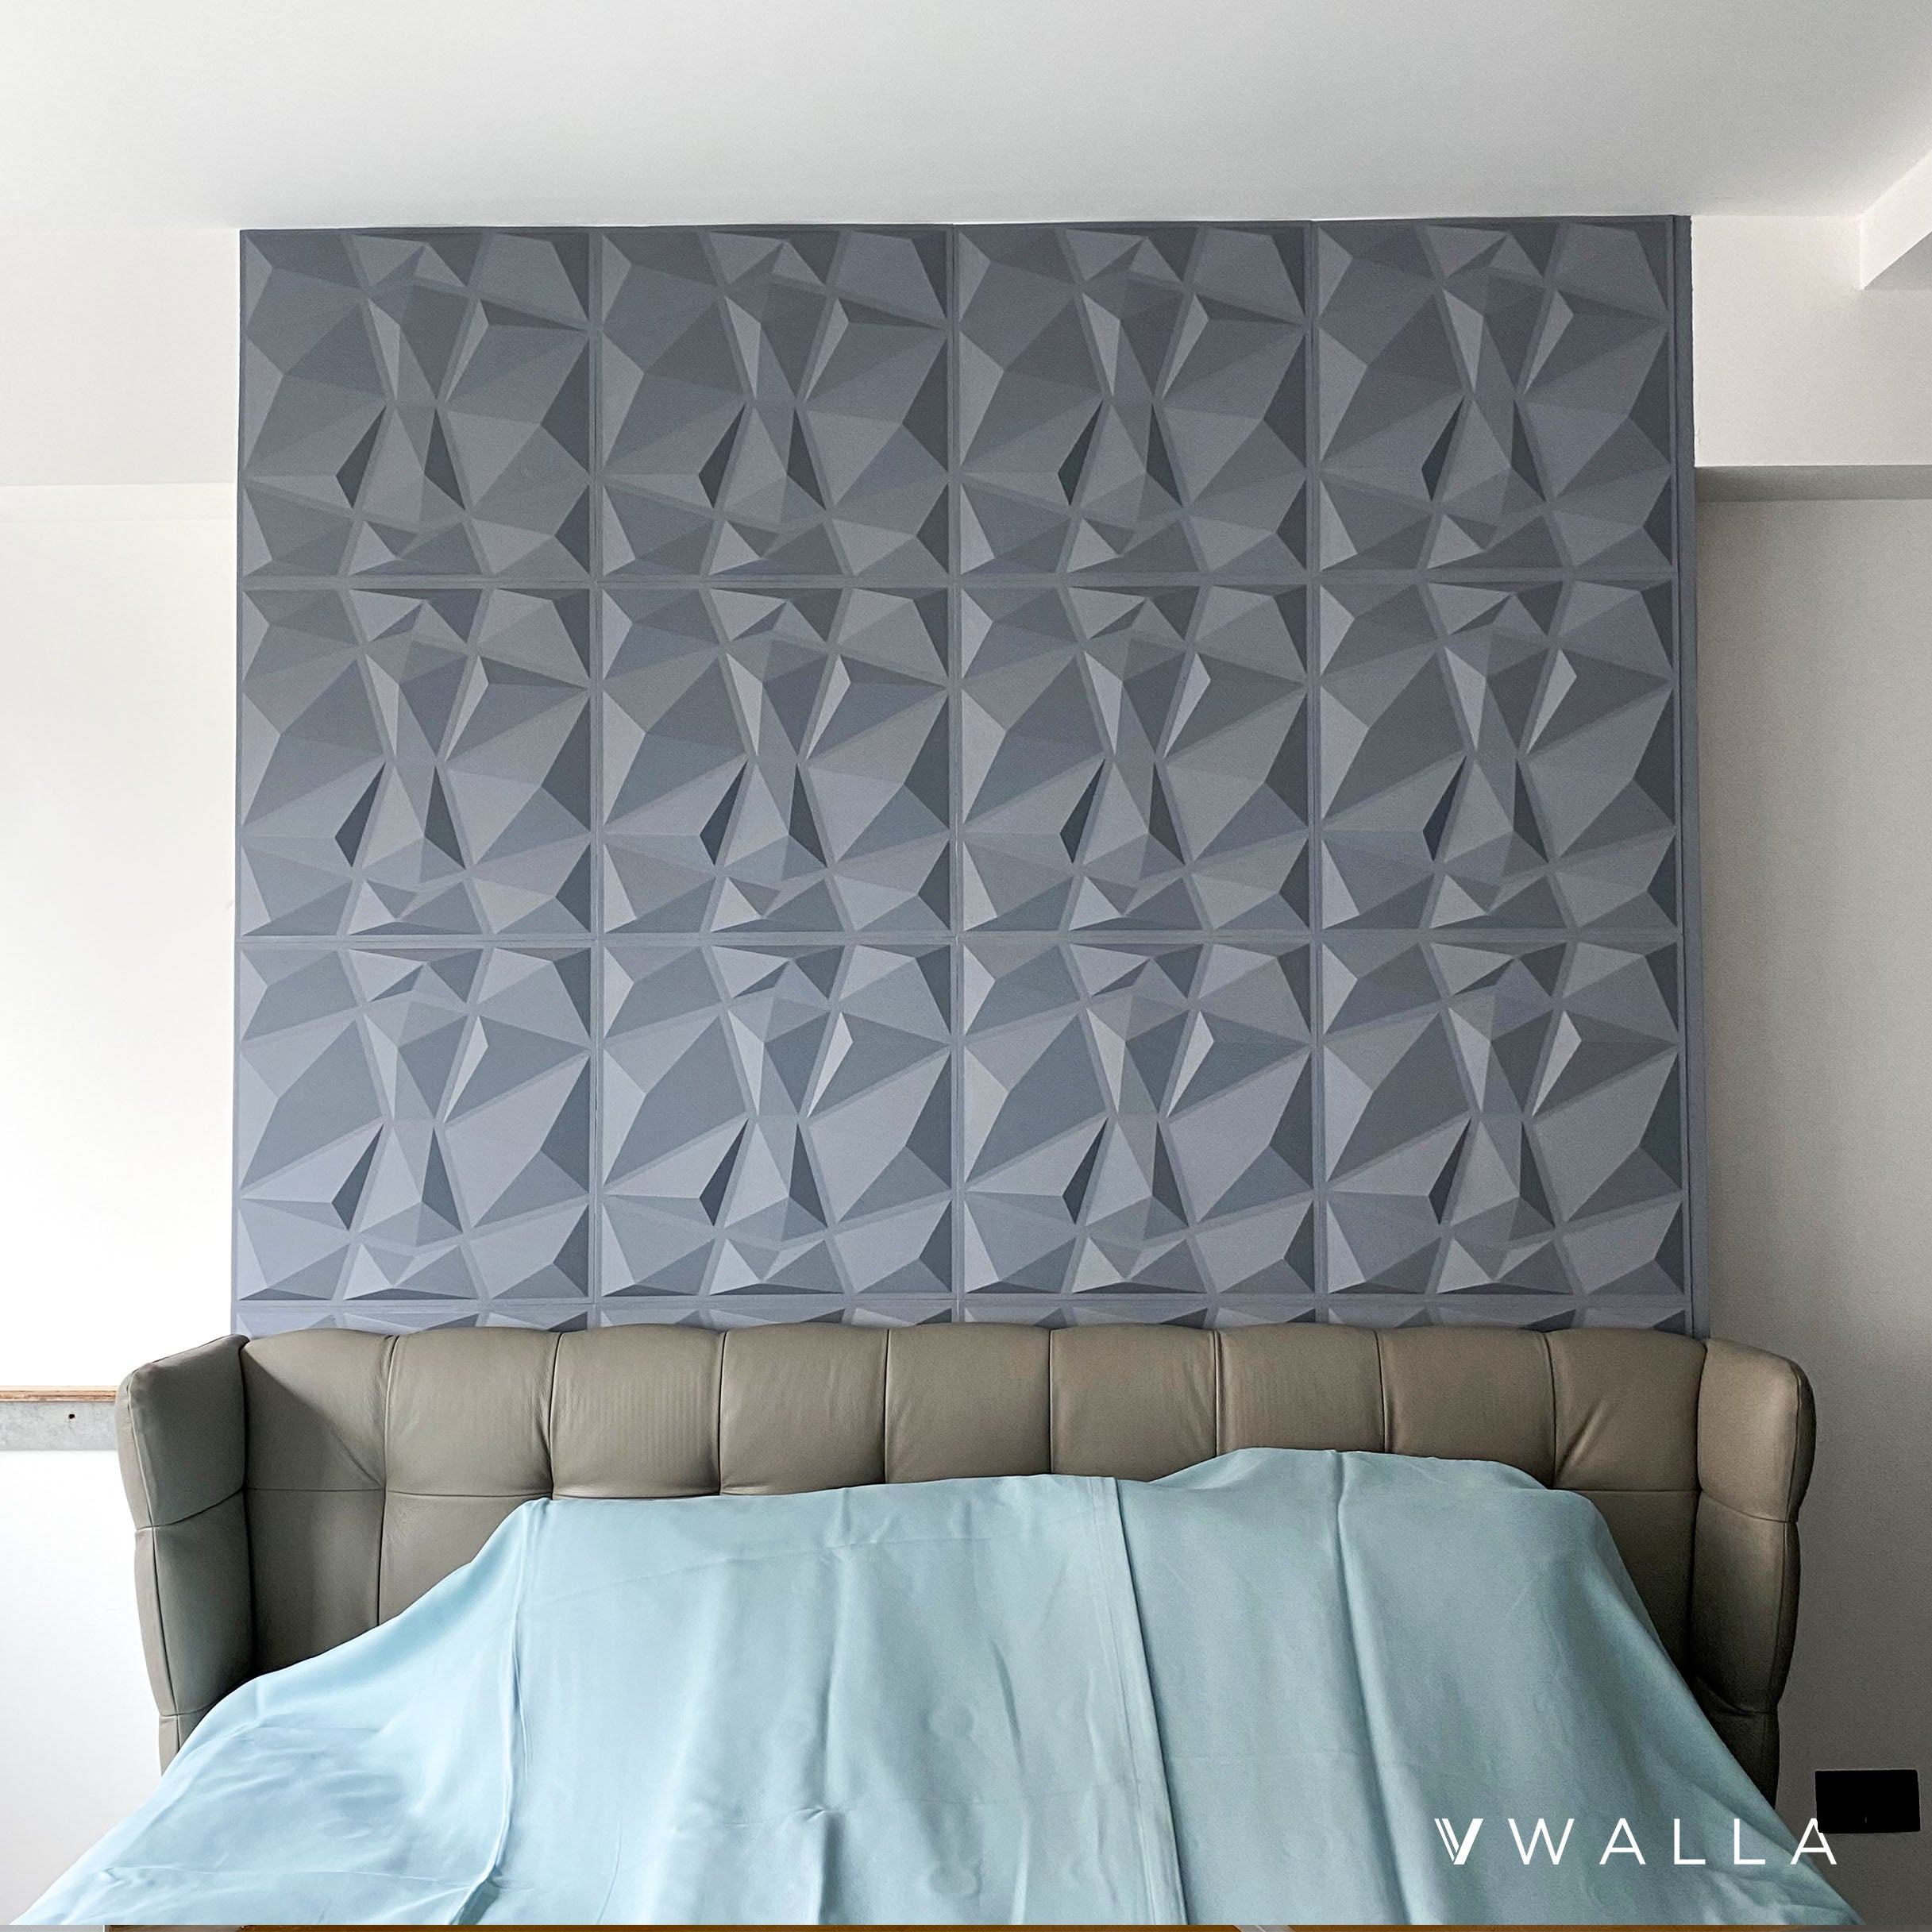 3D Wall Panels - Abstract